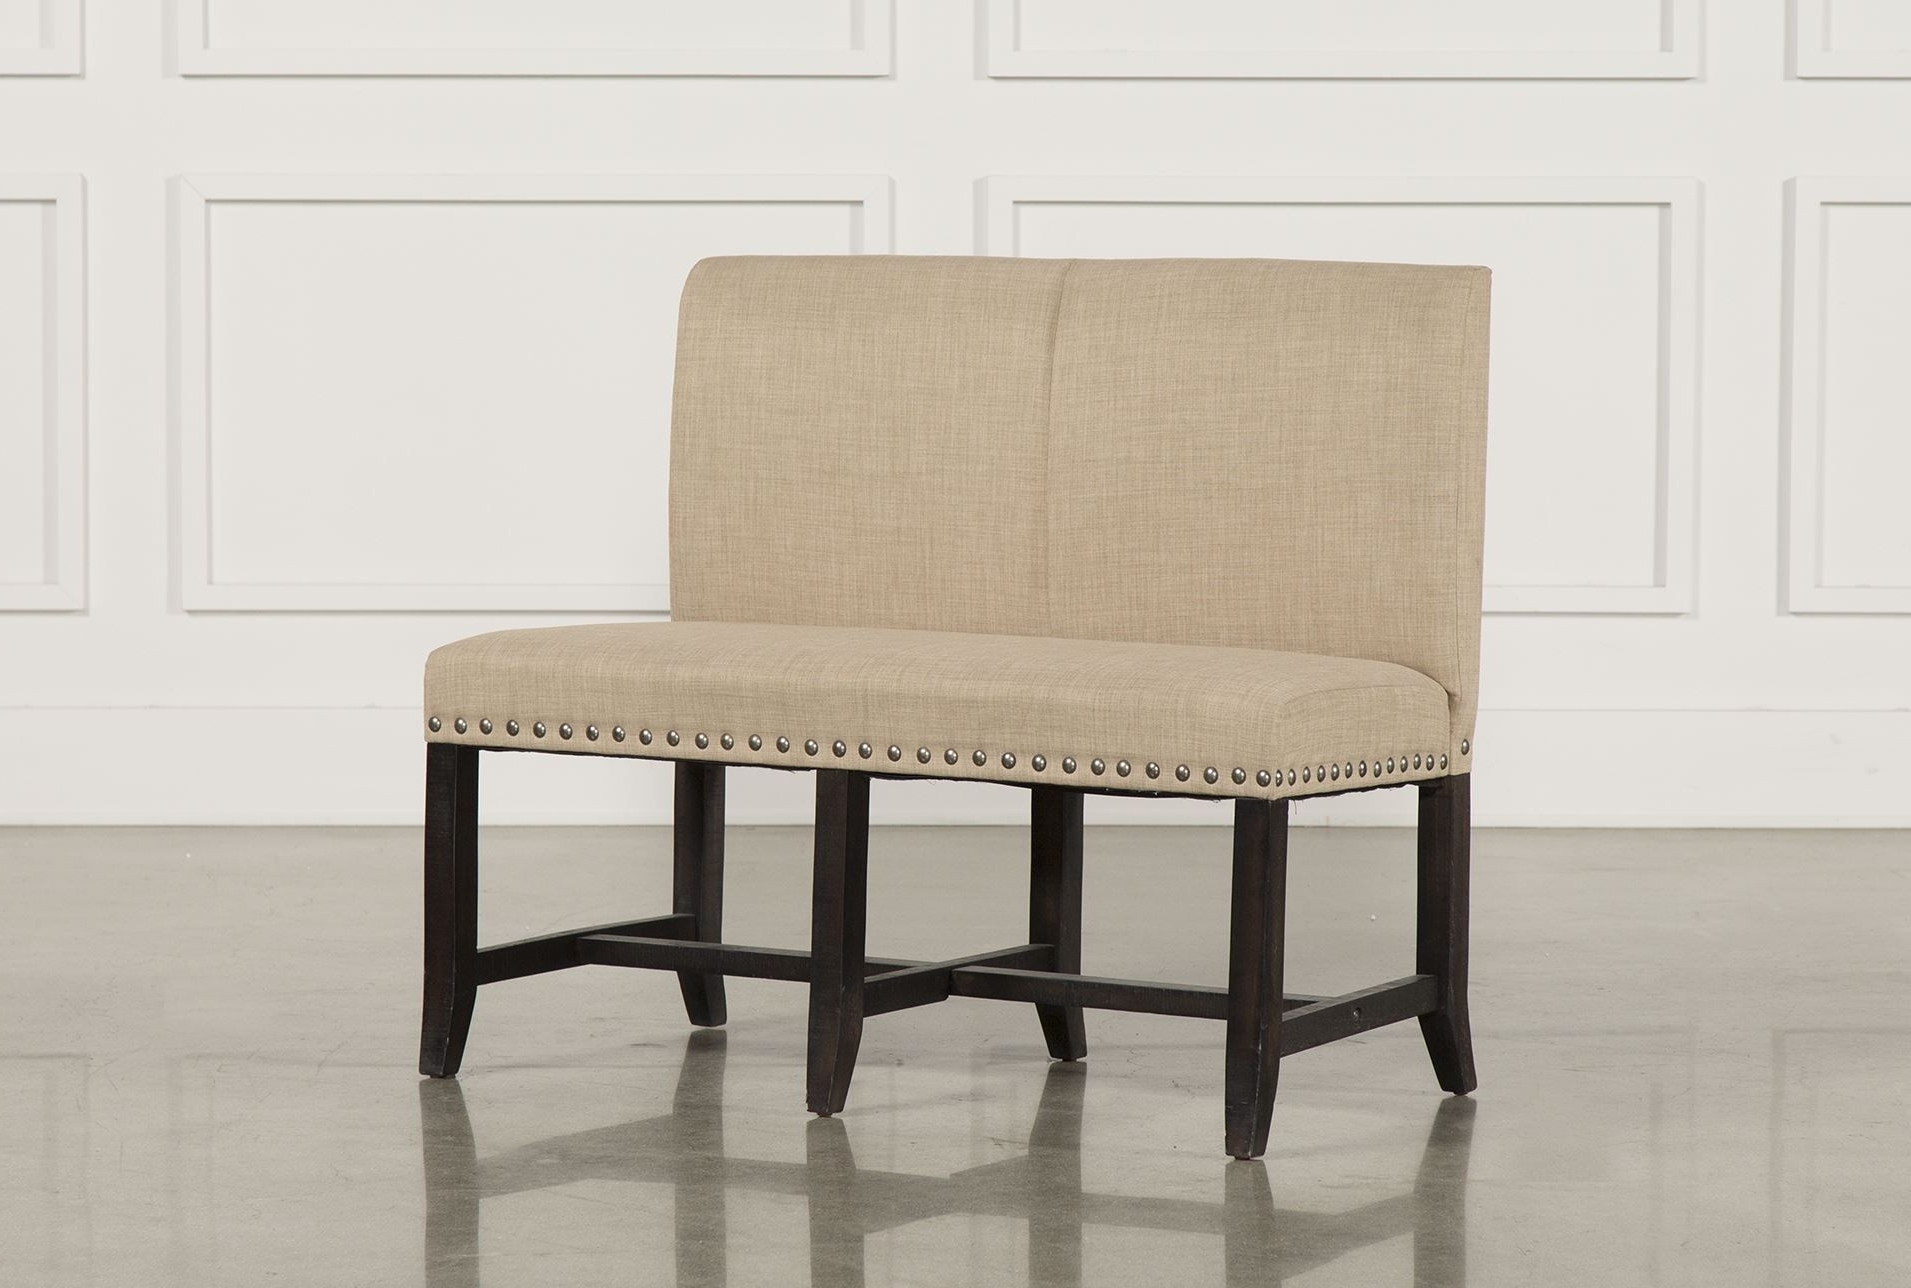 Chair : High Back Upholstered Bench Beautiful Chair Cool Upholstered For Fashionable Jaxon 6 Piece Rectangle Dining Sets With Bench & Uph Chairs (View 4 of 25)